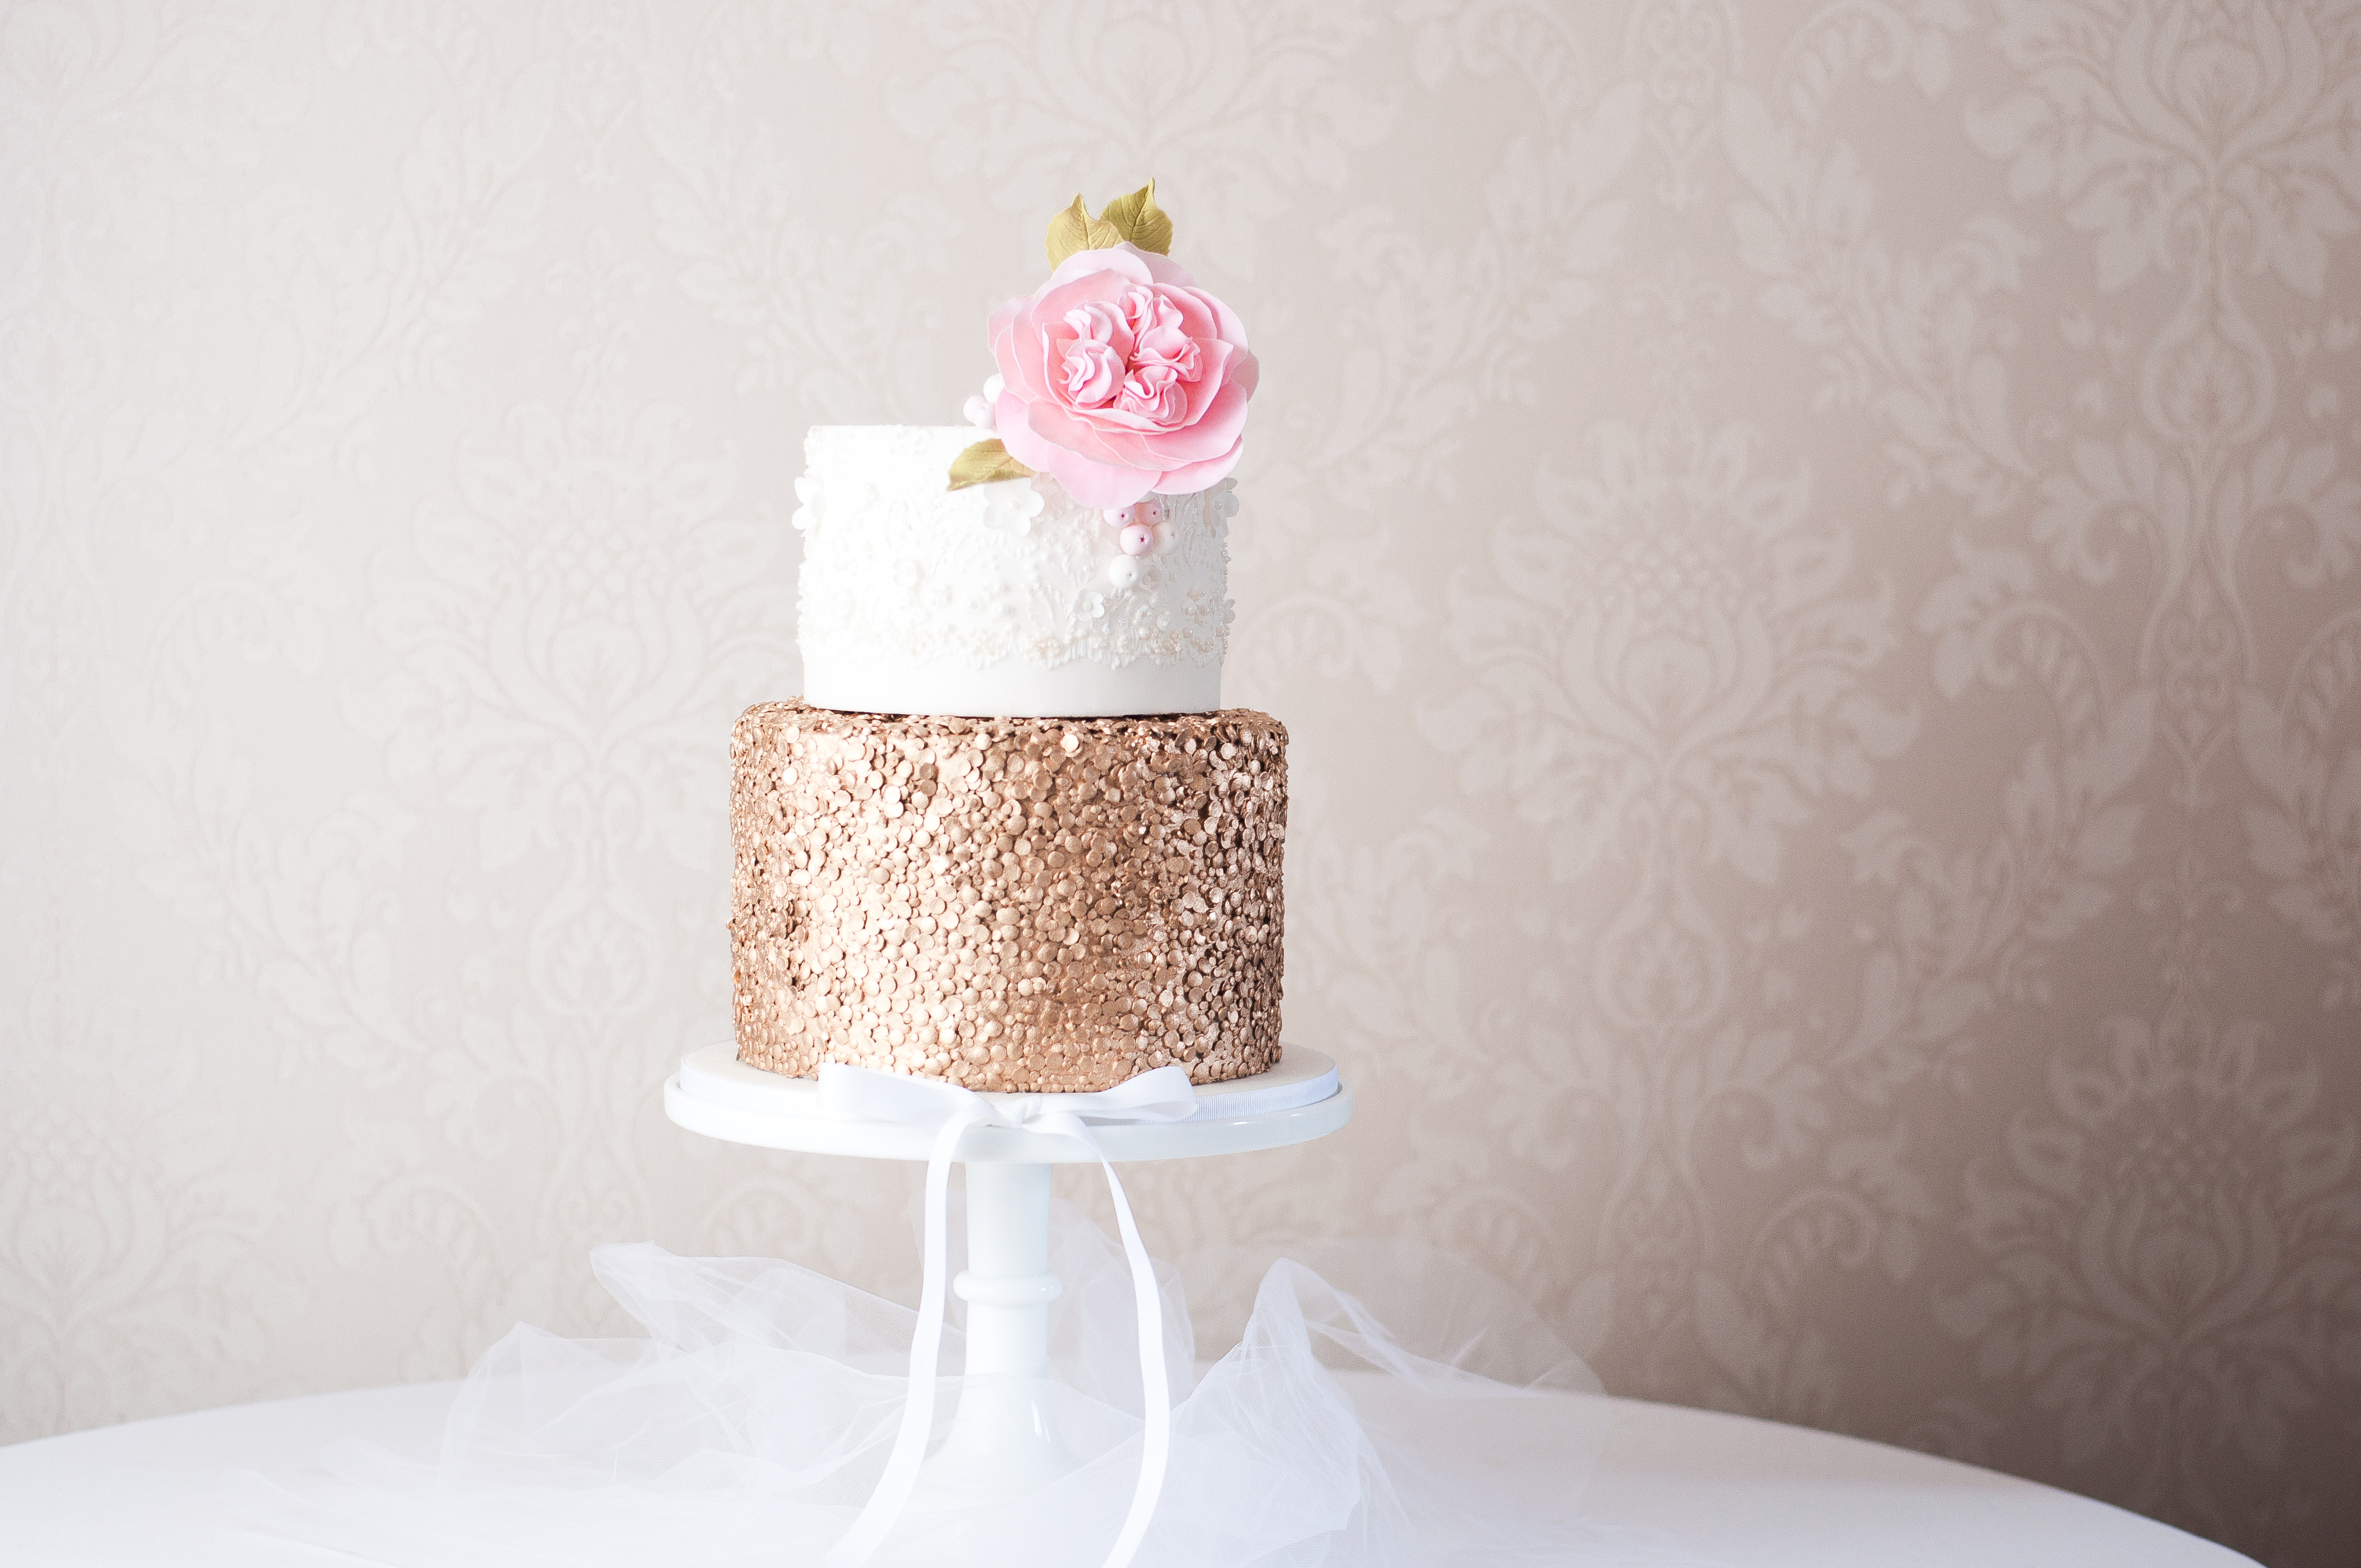 Gold sequin and lace fondant wedding cake